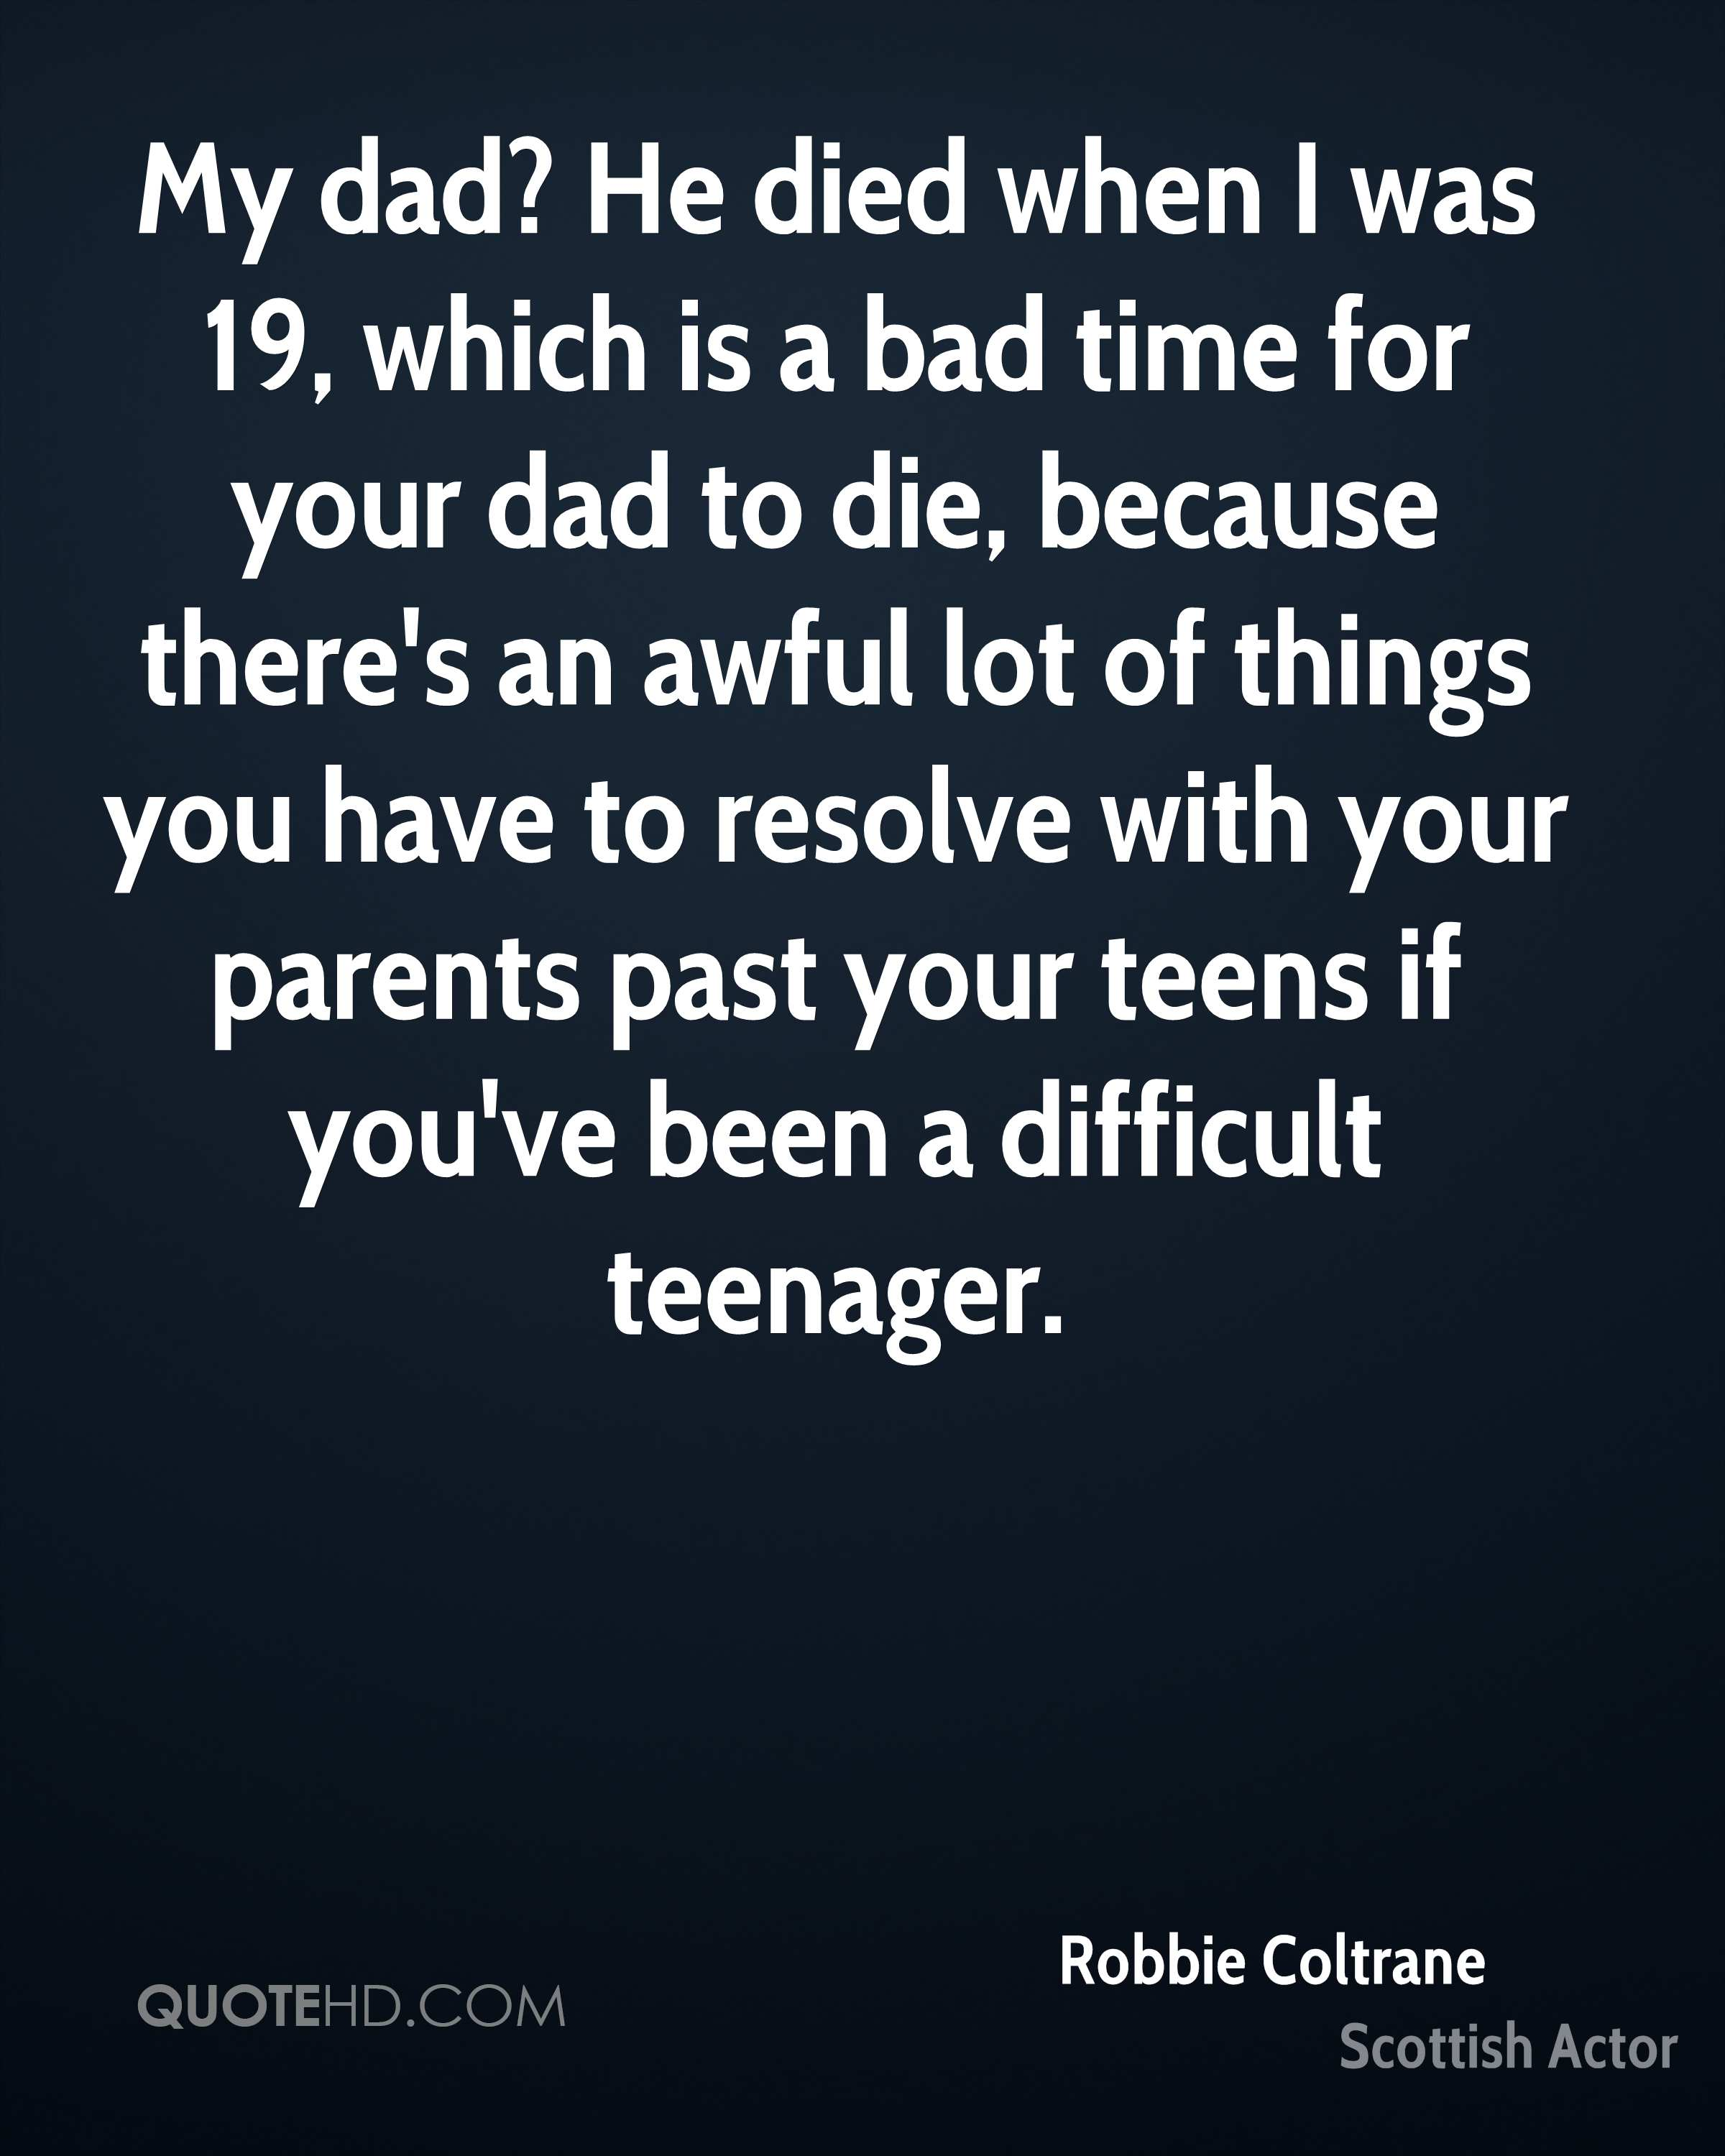 My dad? He died when I was 19, which is a bad time for your dad to die, because there's an awful lot of things you have to resolve with your parents past your teens if you've been a difficult teenager.